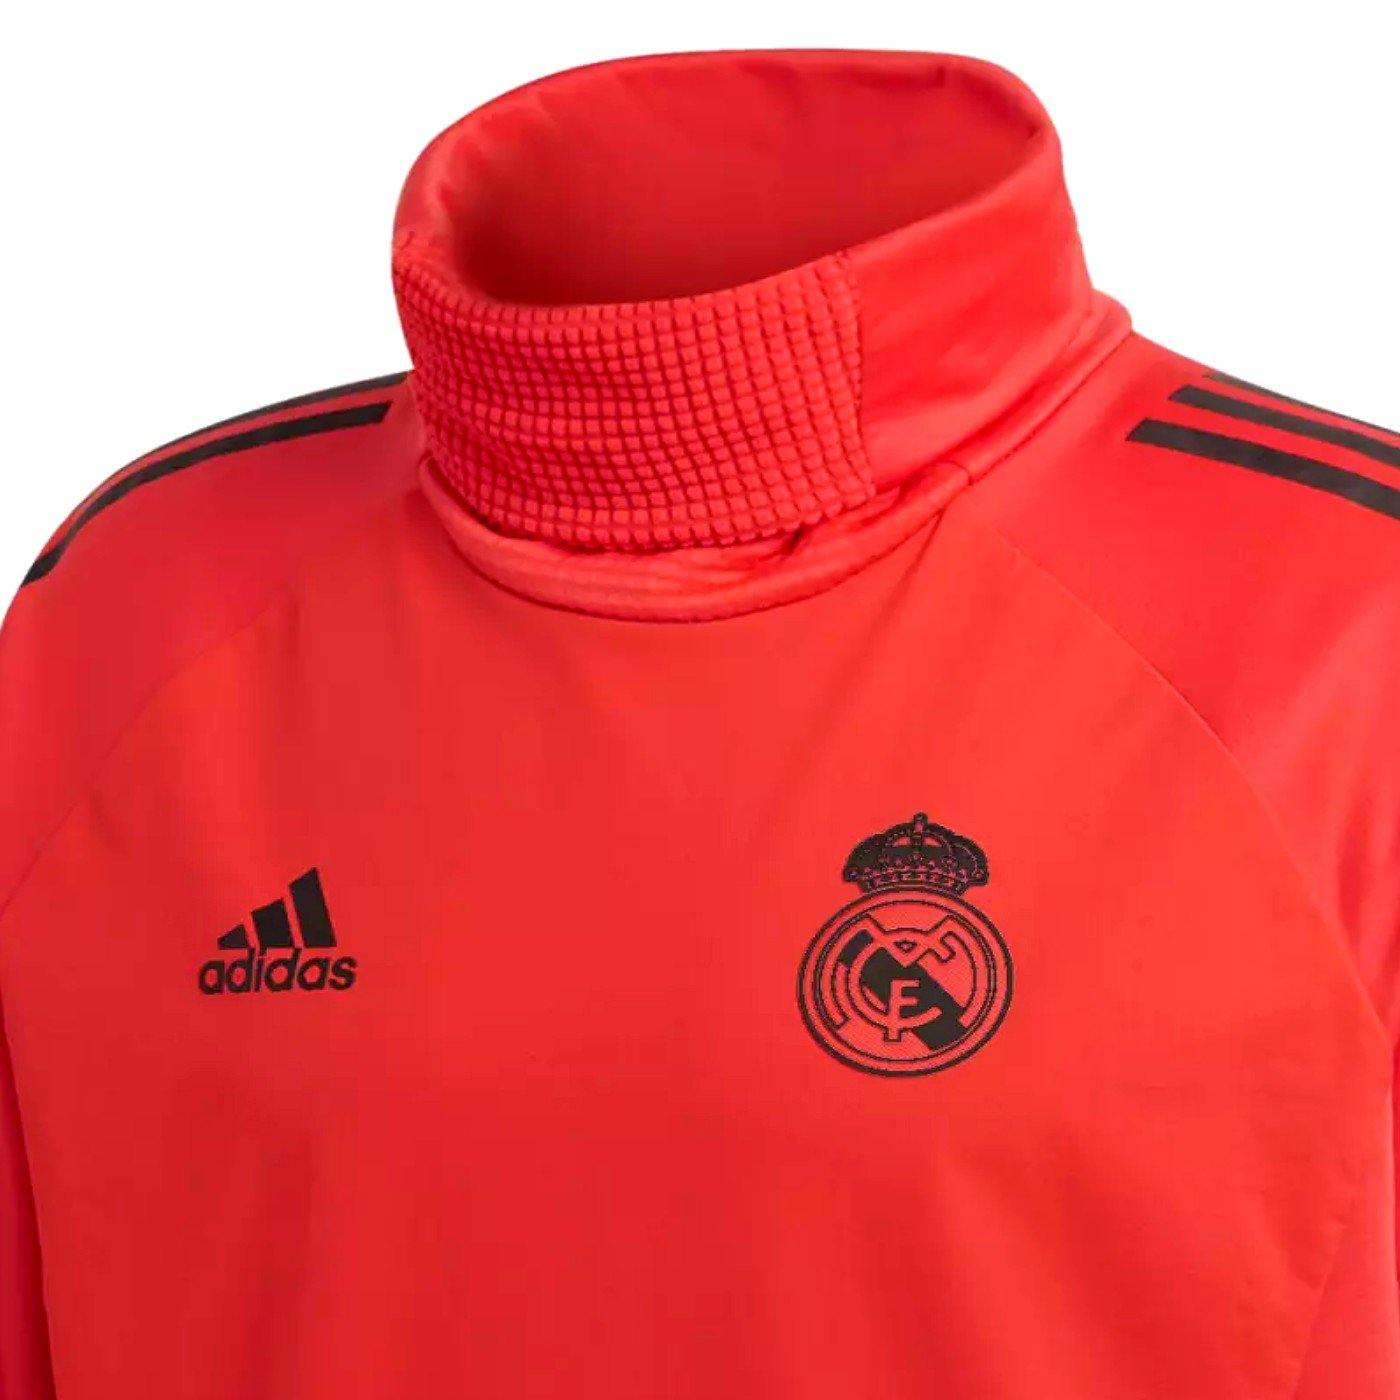 98821096a ... Real Madrid UCL training technical soccer sweatshirt 2018 19 - Adidas.  Next slide